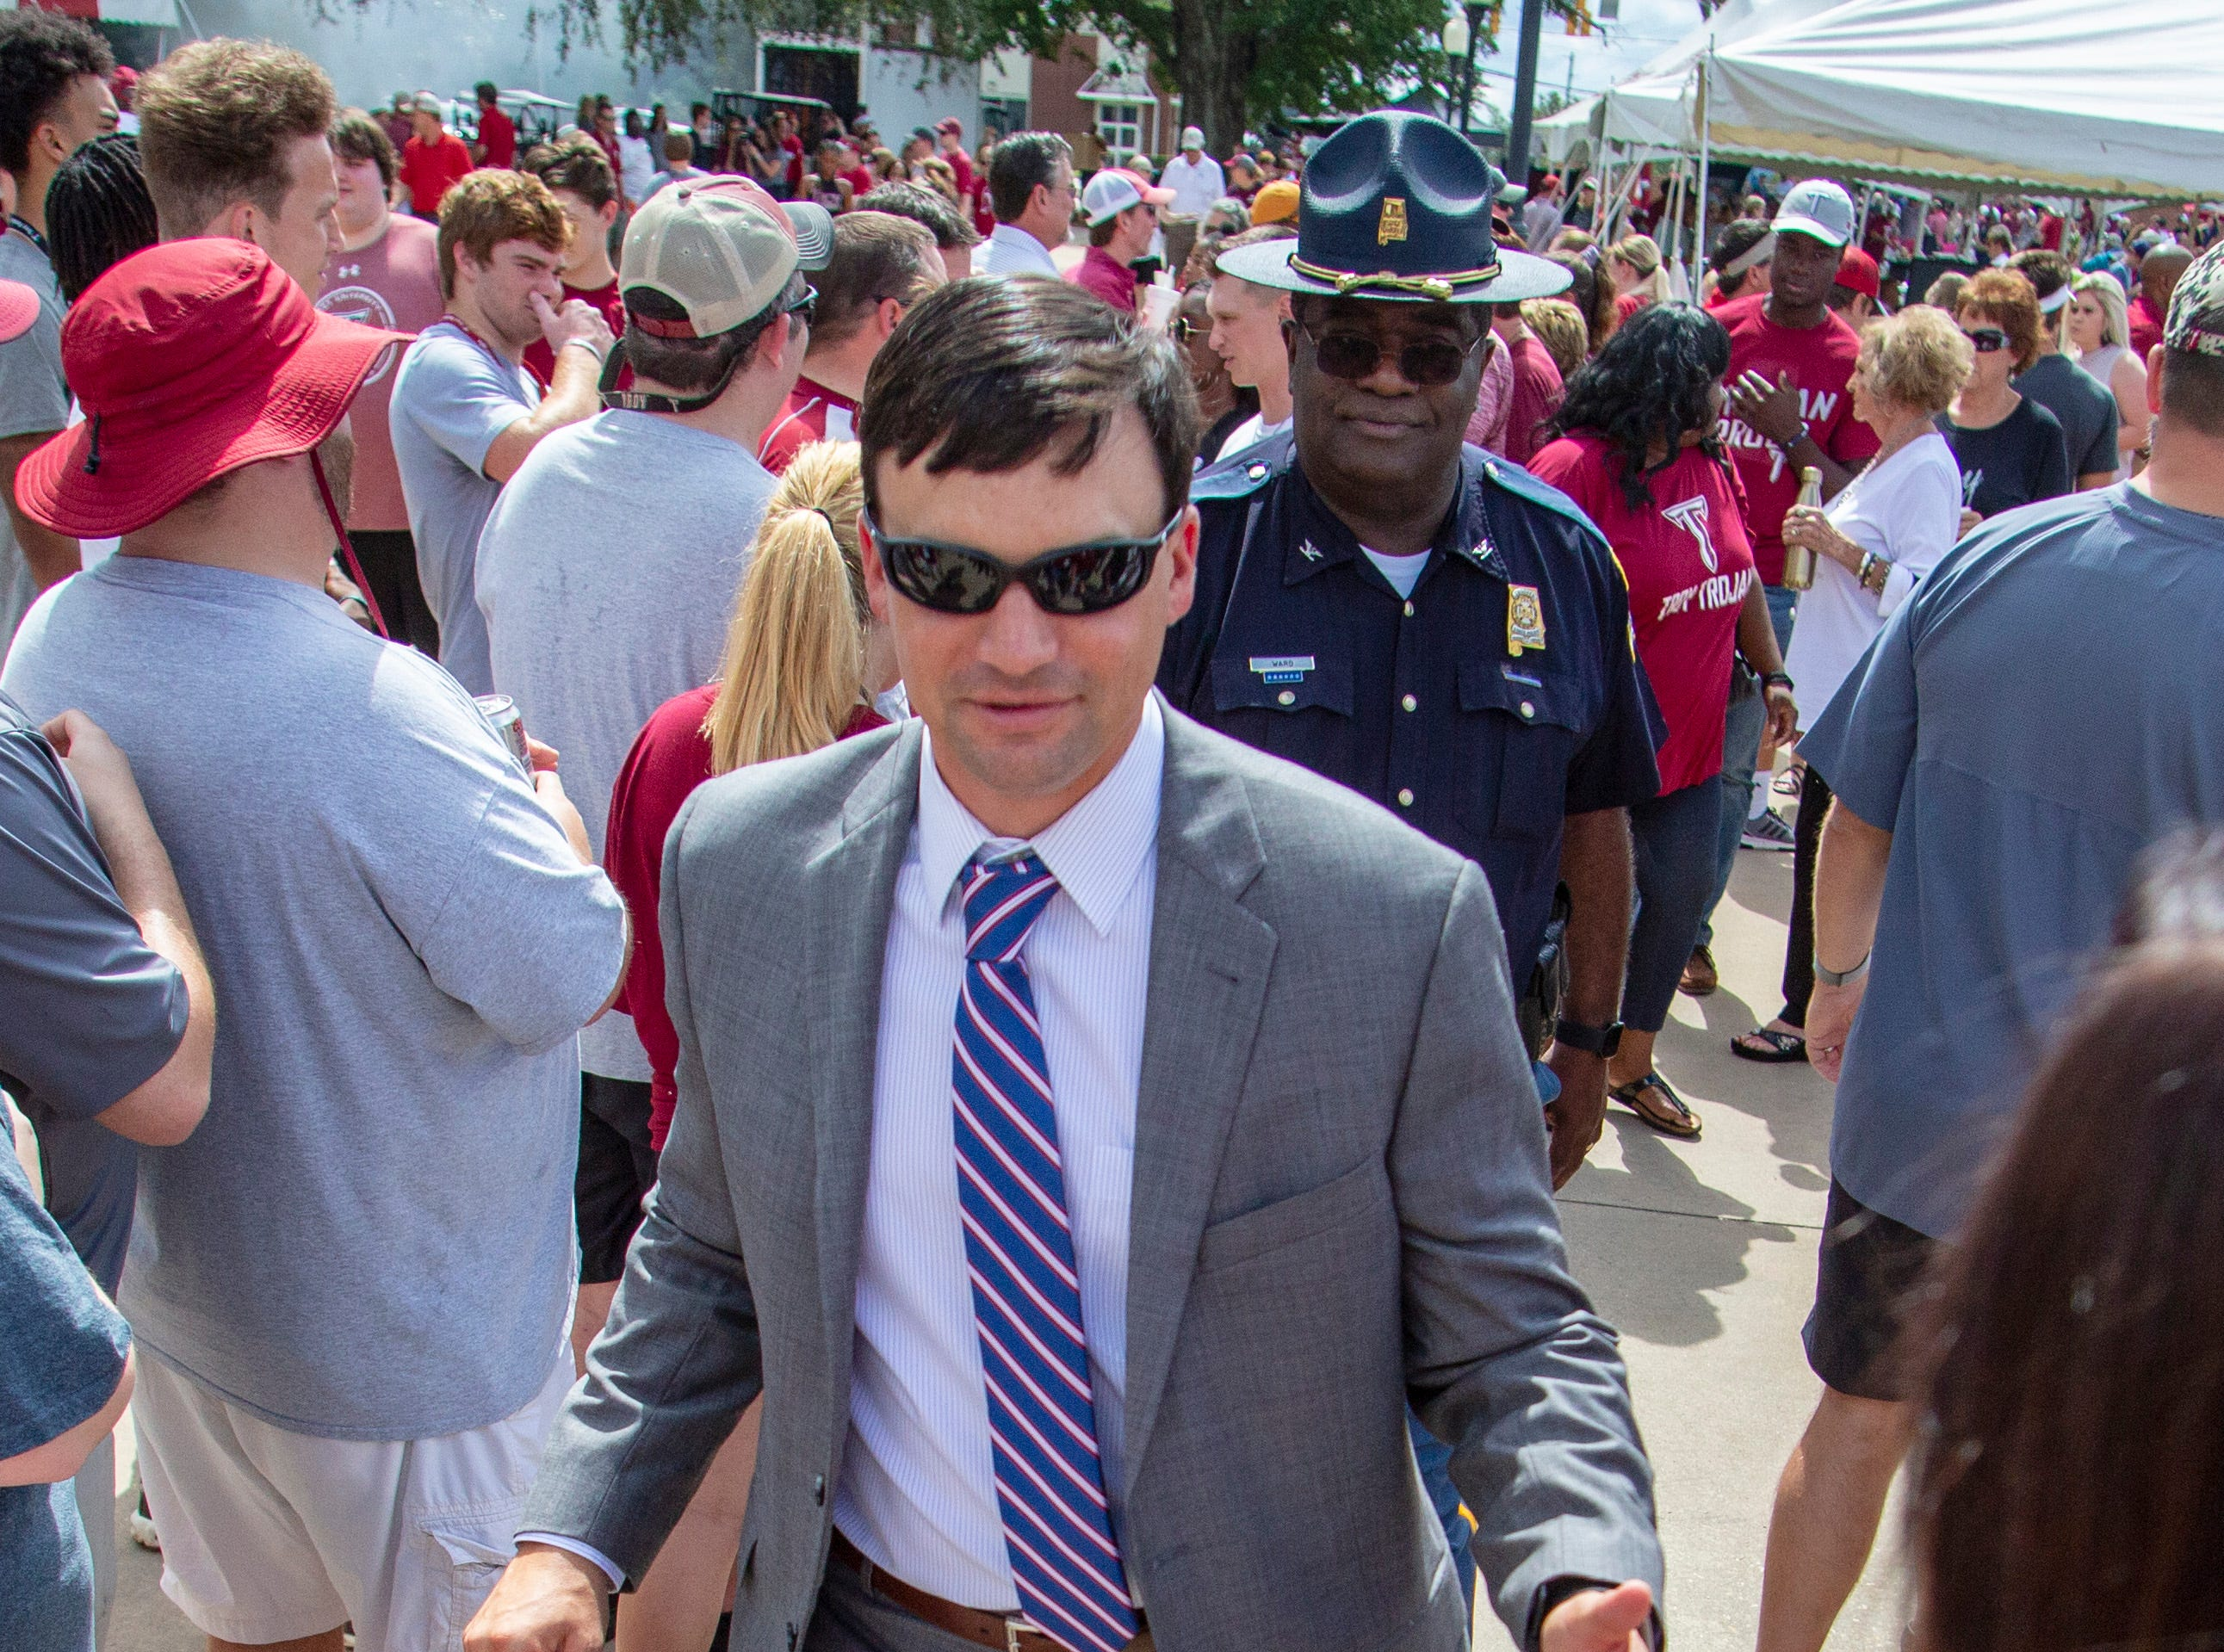 Troy head coach Neal Brown slaps hands with fans as the team is welcomed to the stadium.